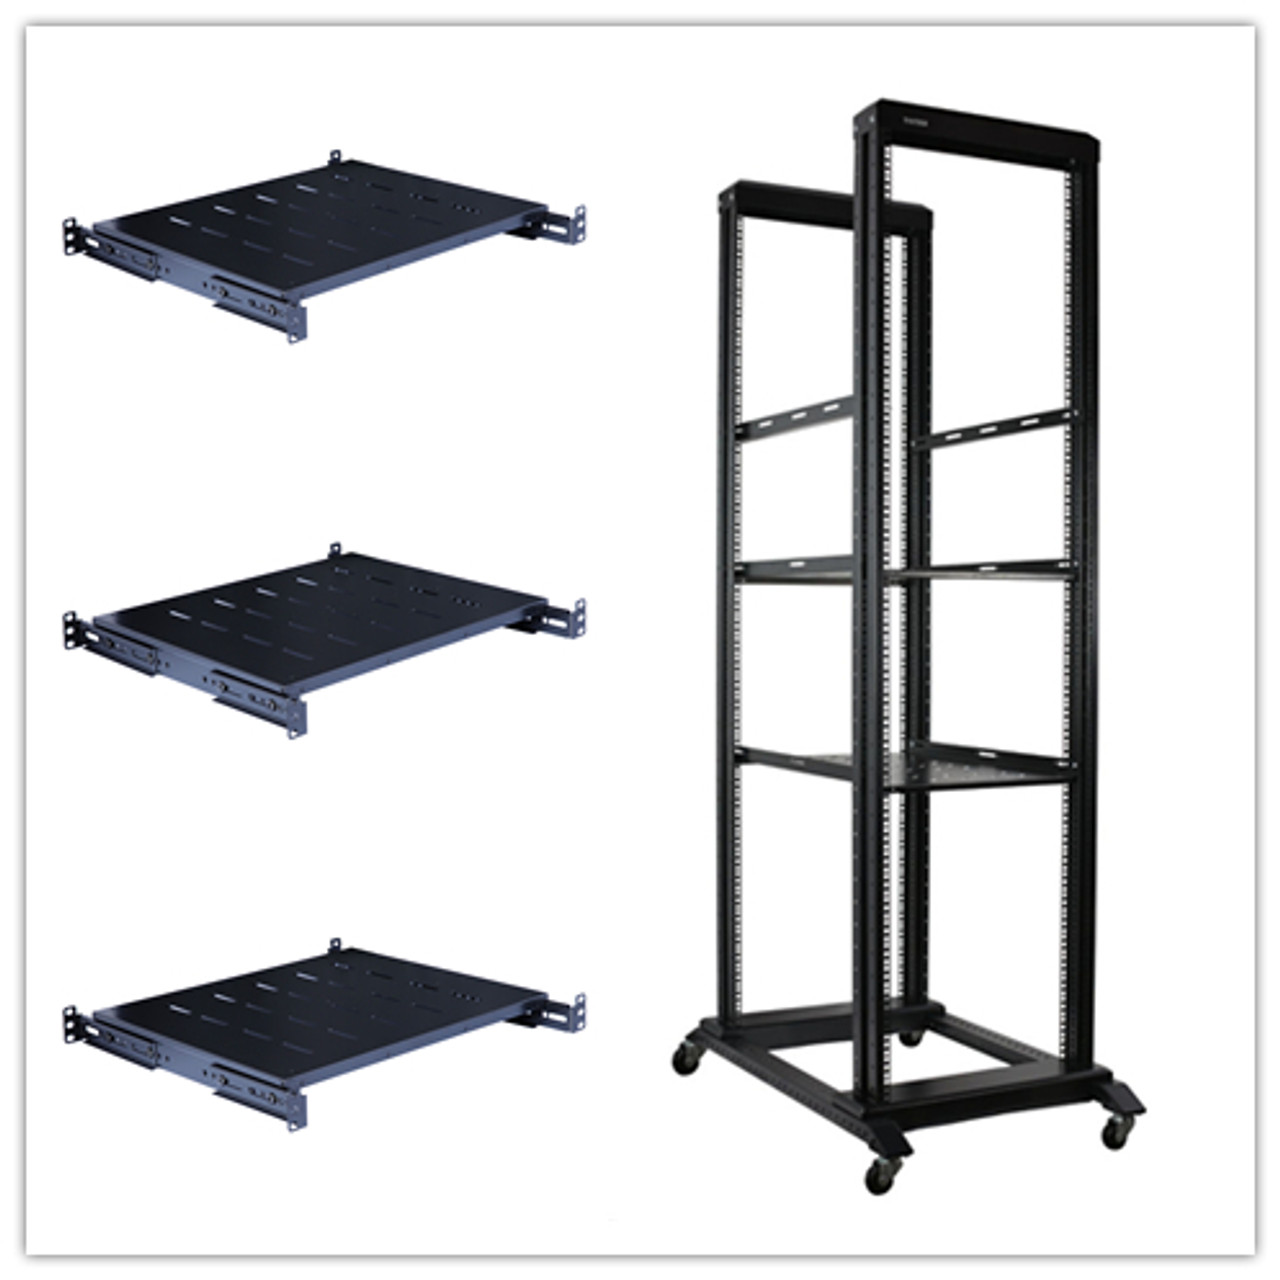 Raising Electronics 42u 4 Post Open Frame 19 Server Audio Steel Rack Deep From 16 32 With Fixed Shelves